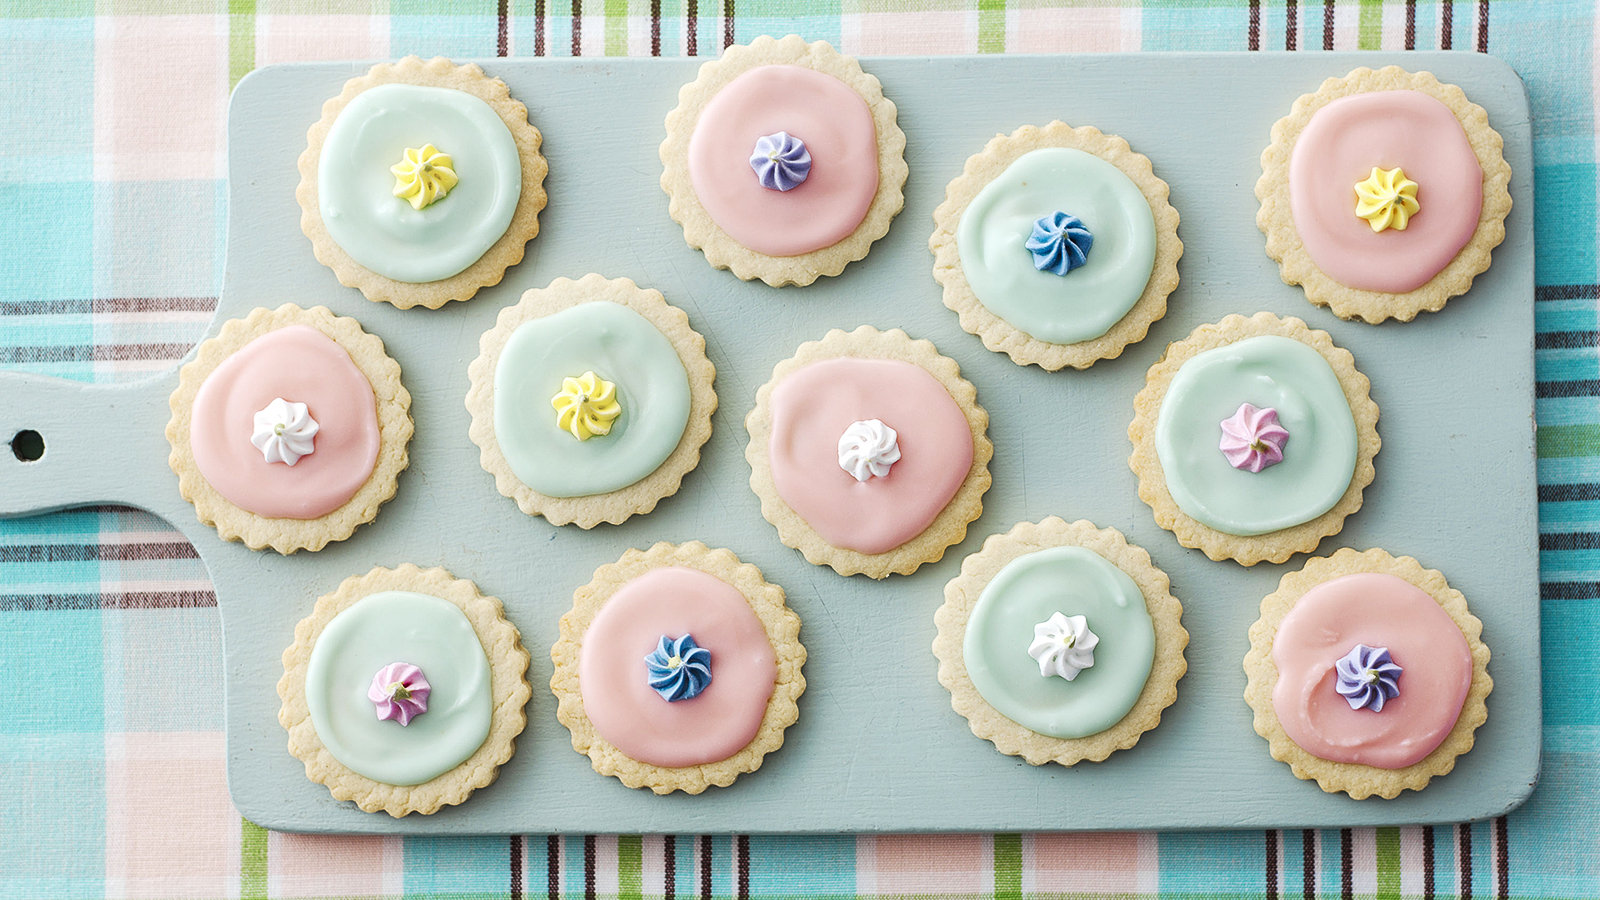 Iced biscuits recipe bbc food forumfinder Choice Image